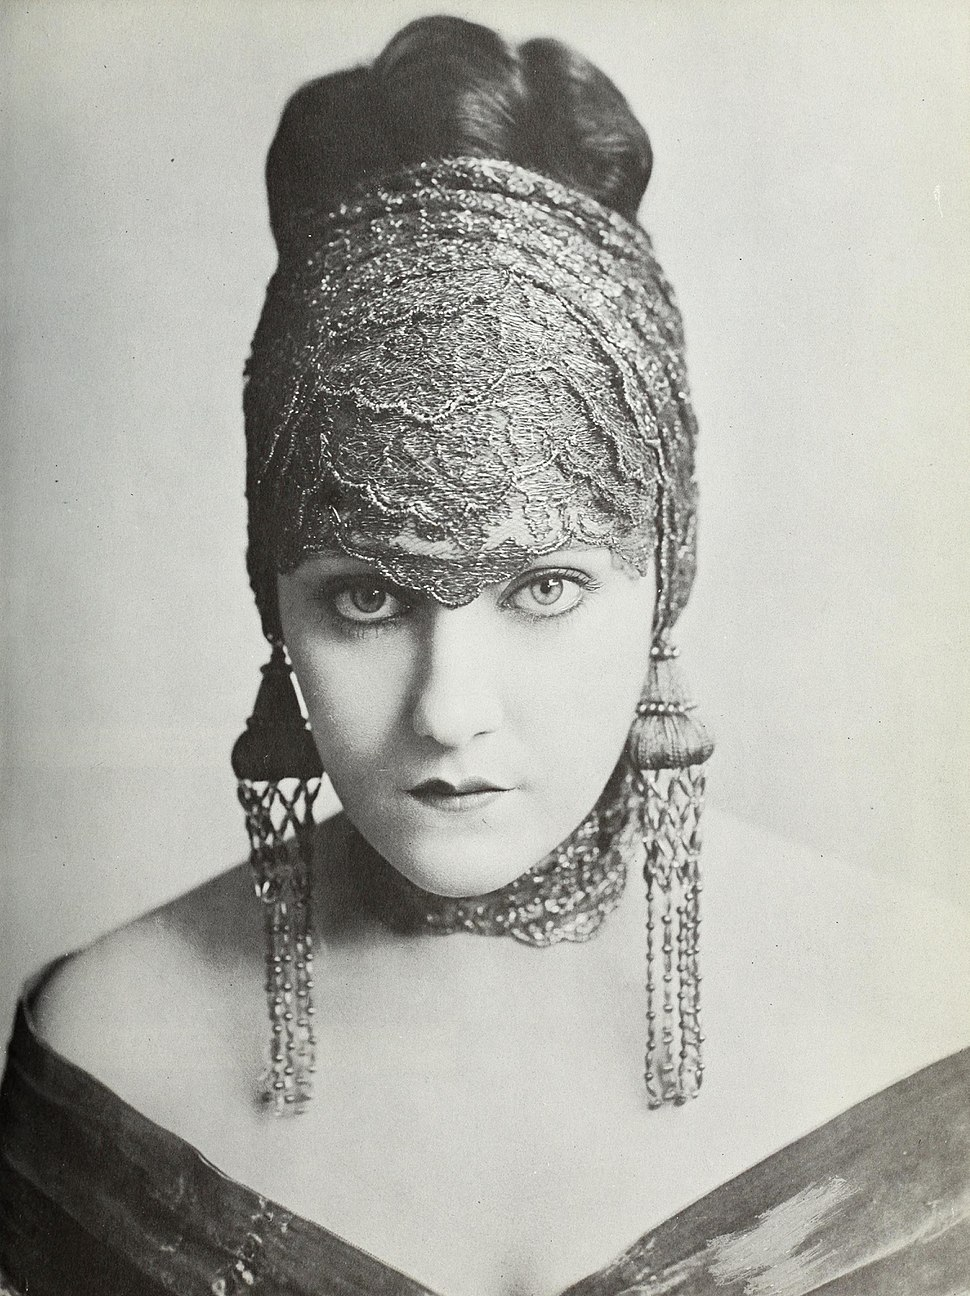 Gloria Swanson - A Pictorial History of the Silent Screen